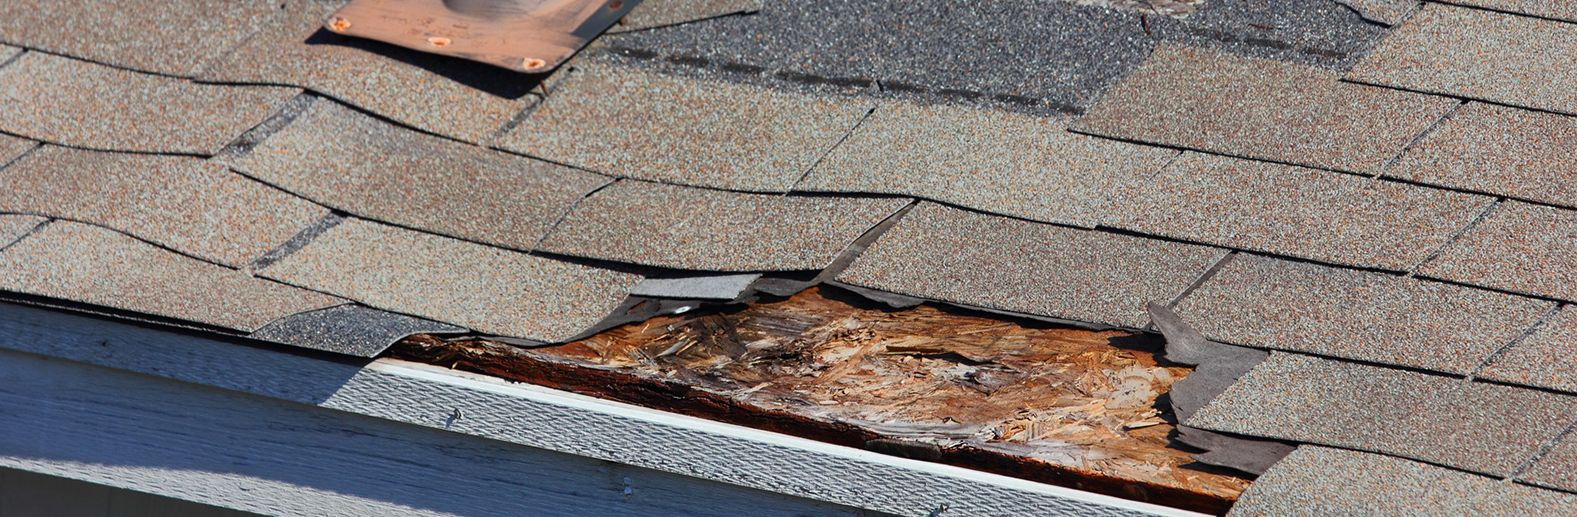 24/7 emergency roof repairs west midlands